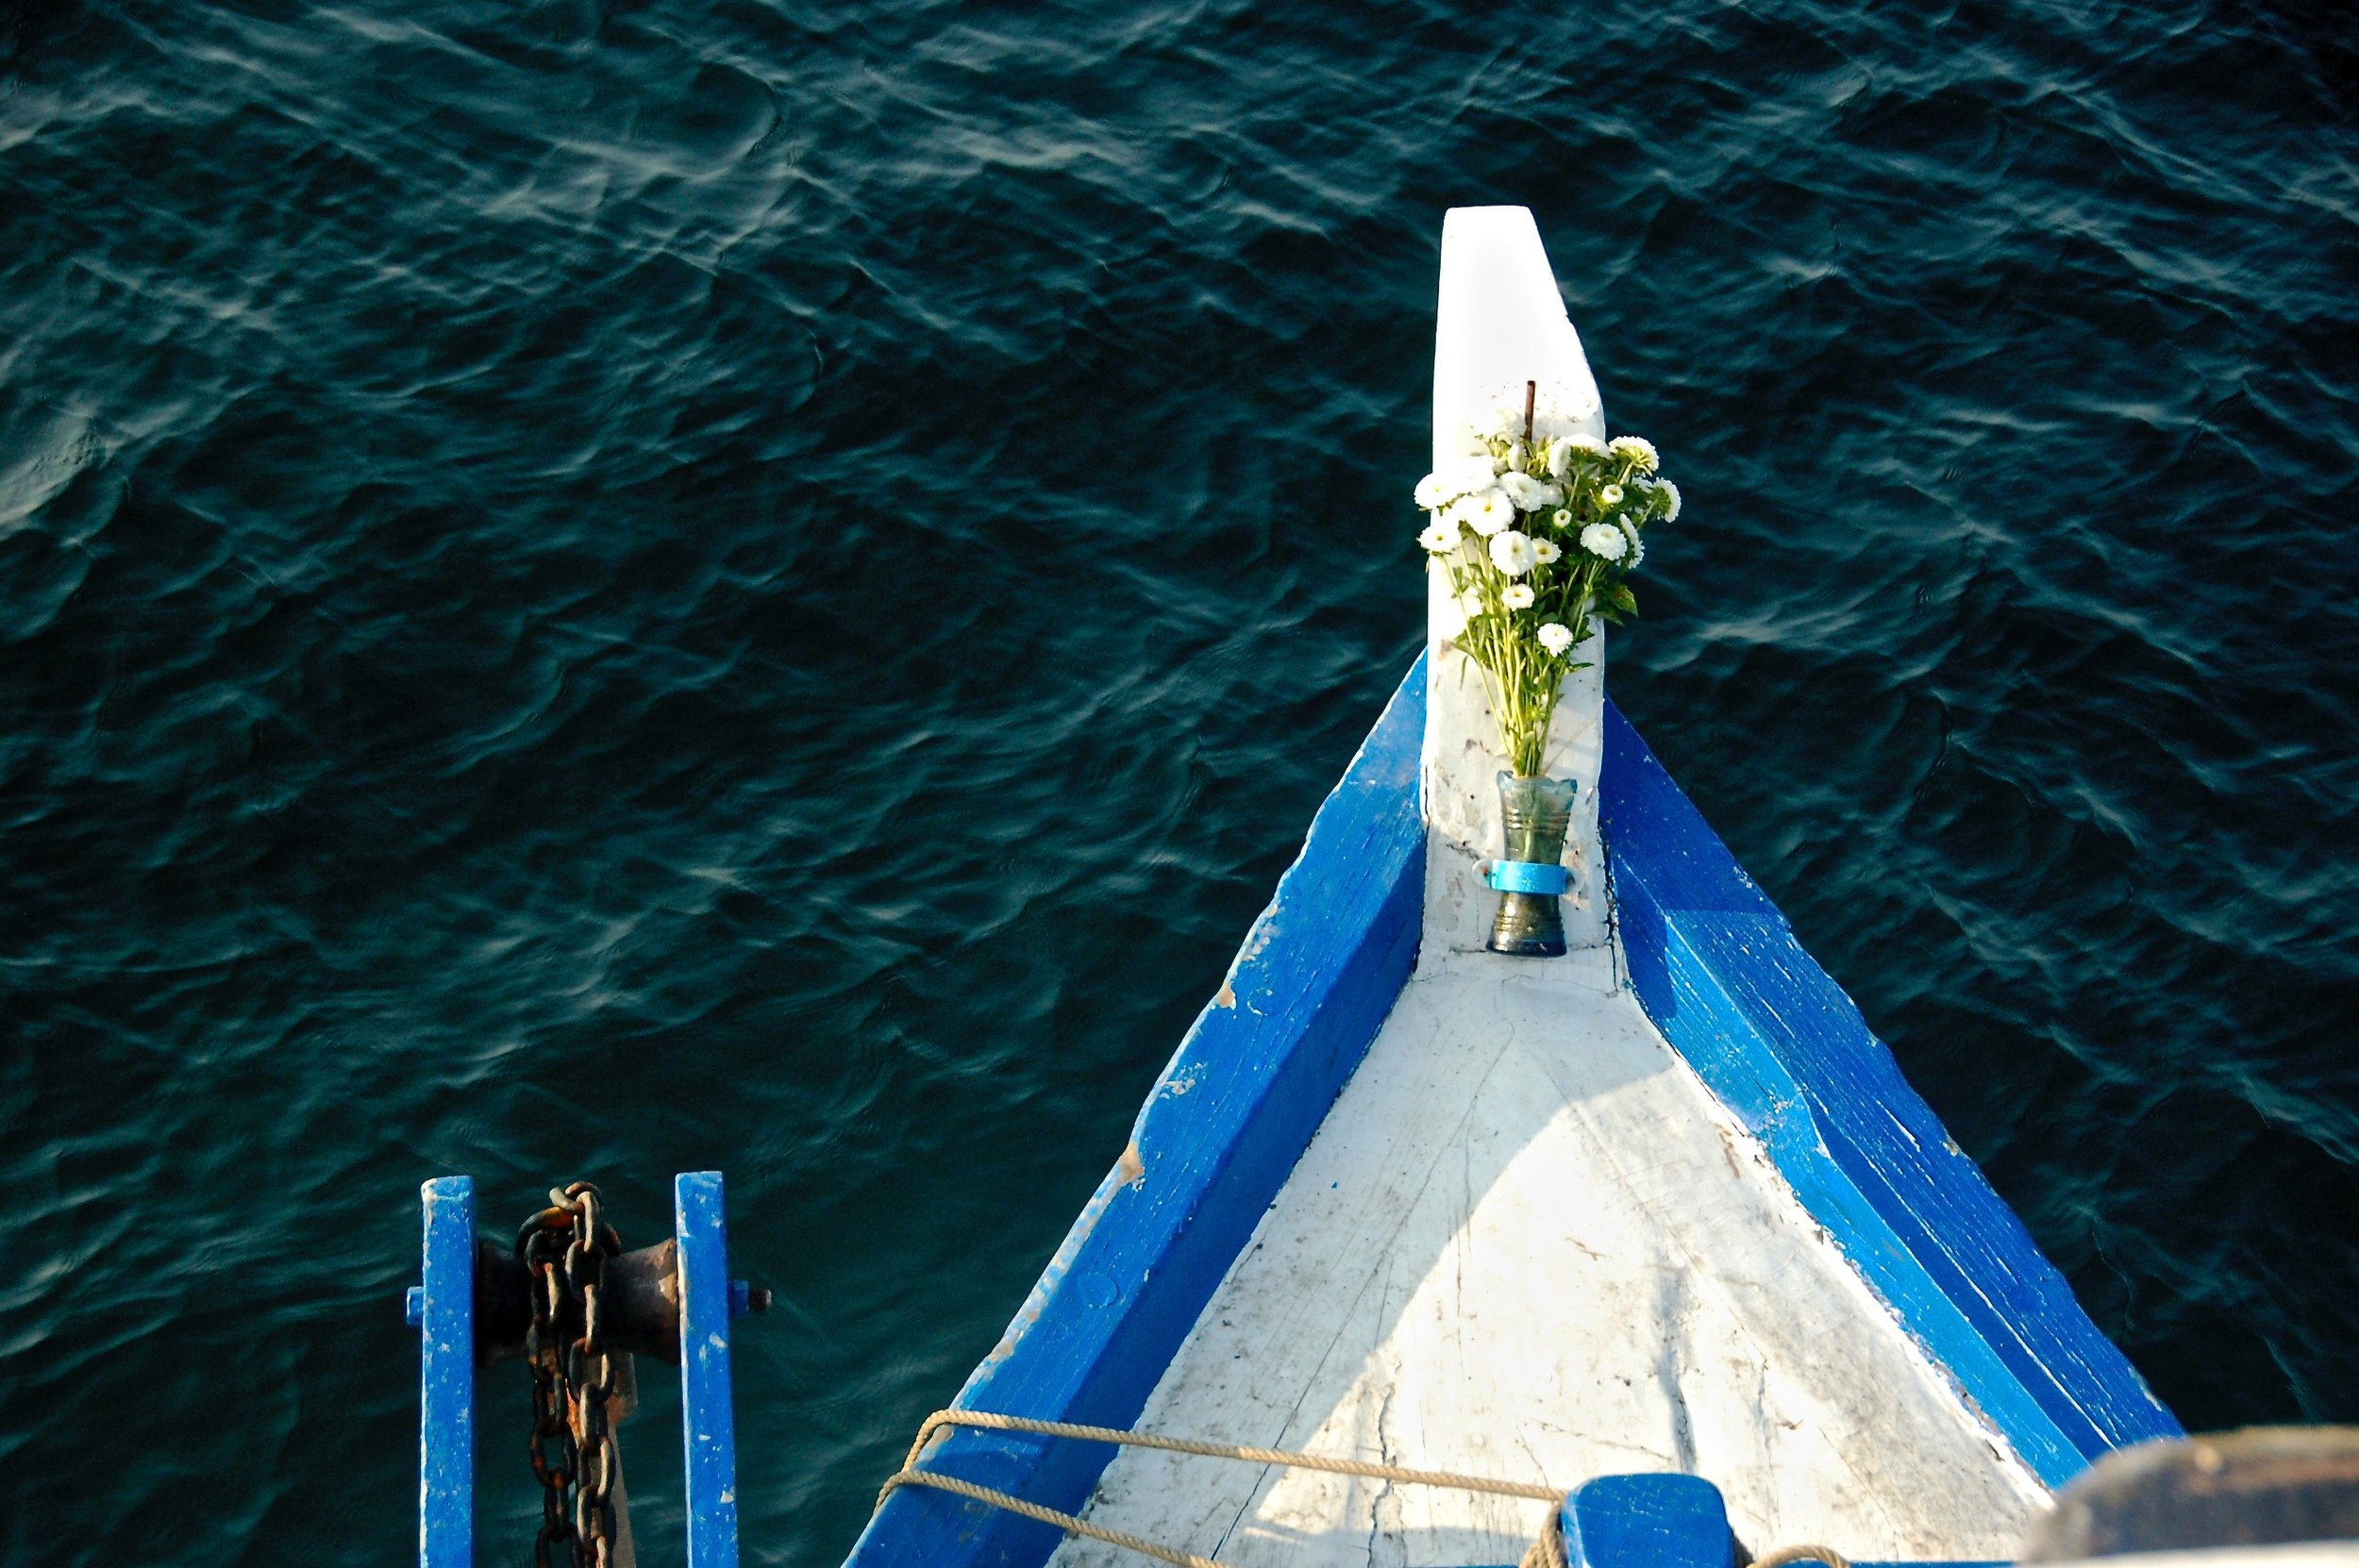 Many boats placed flowers on their bow as an offering to the sea-gods